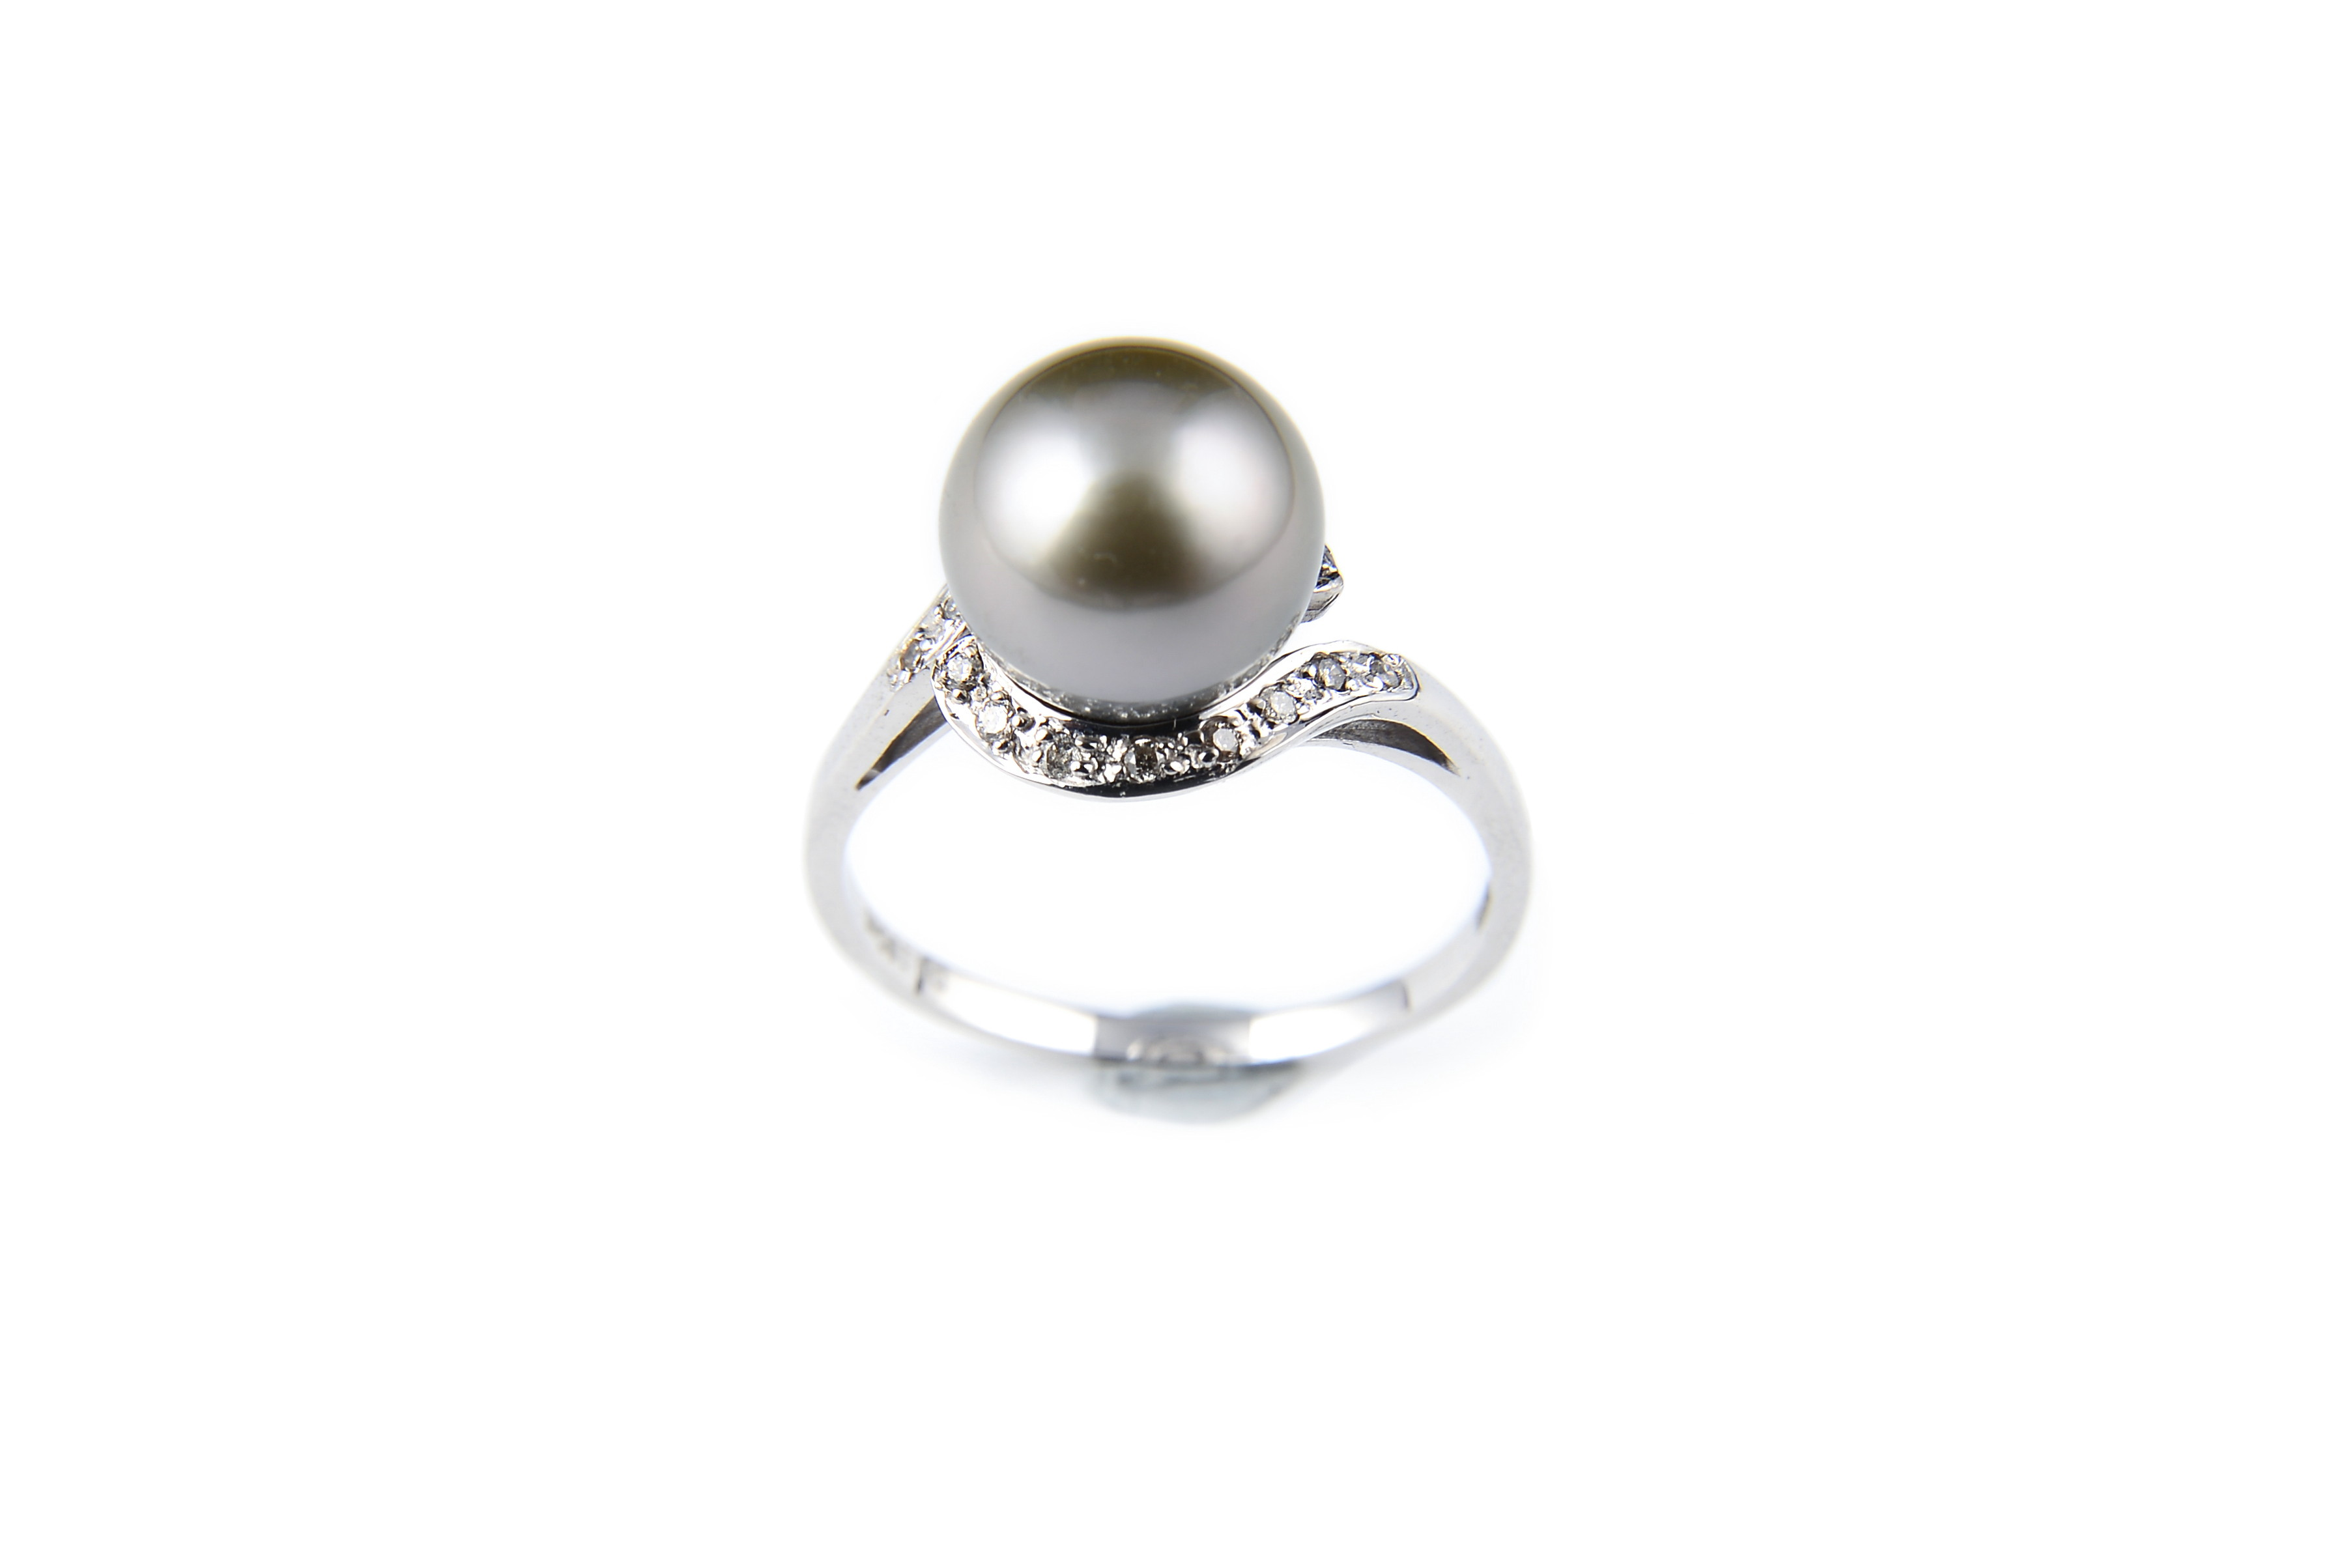 10.2mm AAA+ Gem Quality Black Tahitian Pearl Diamond Ring -rg6